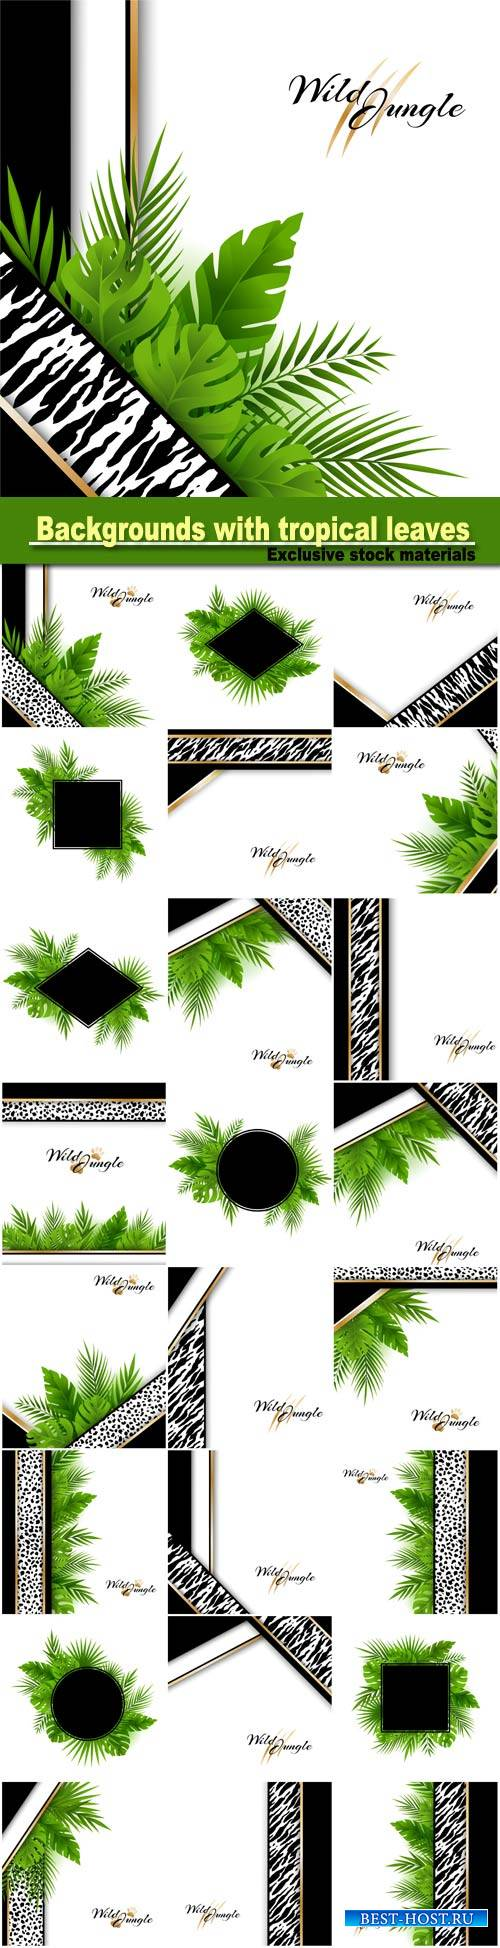 Vector abstract backgrounds with tropical leaves